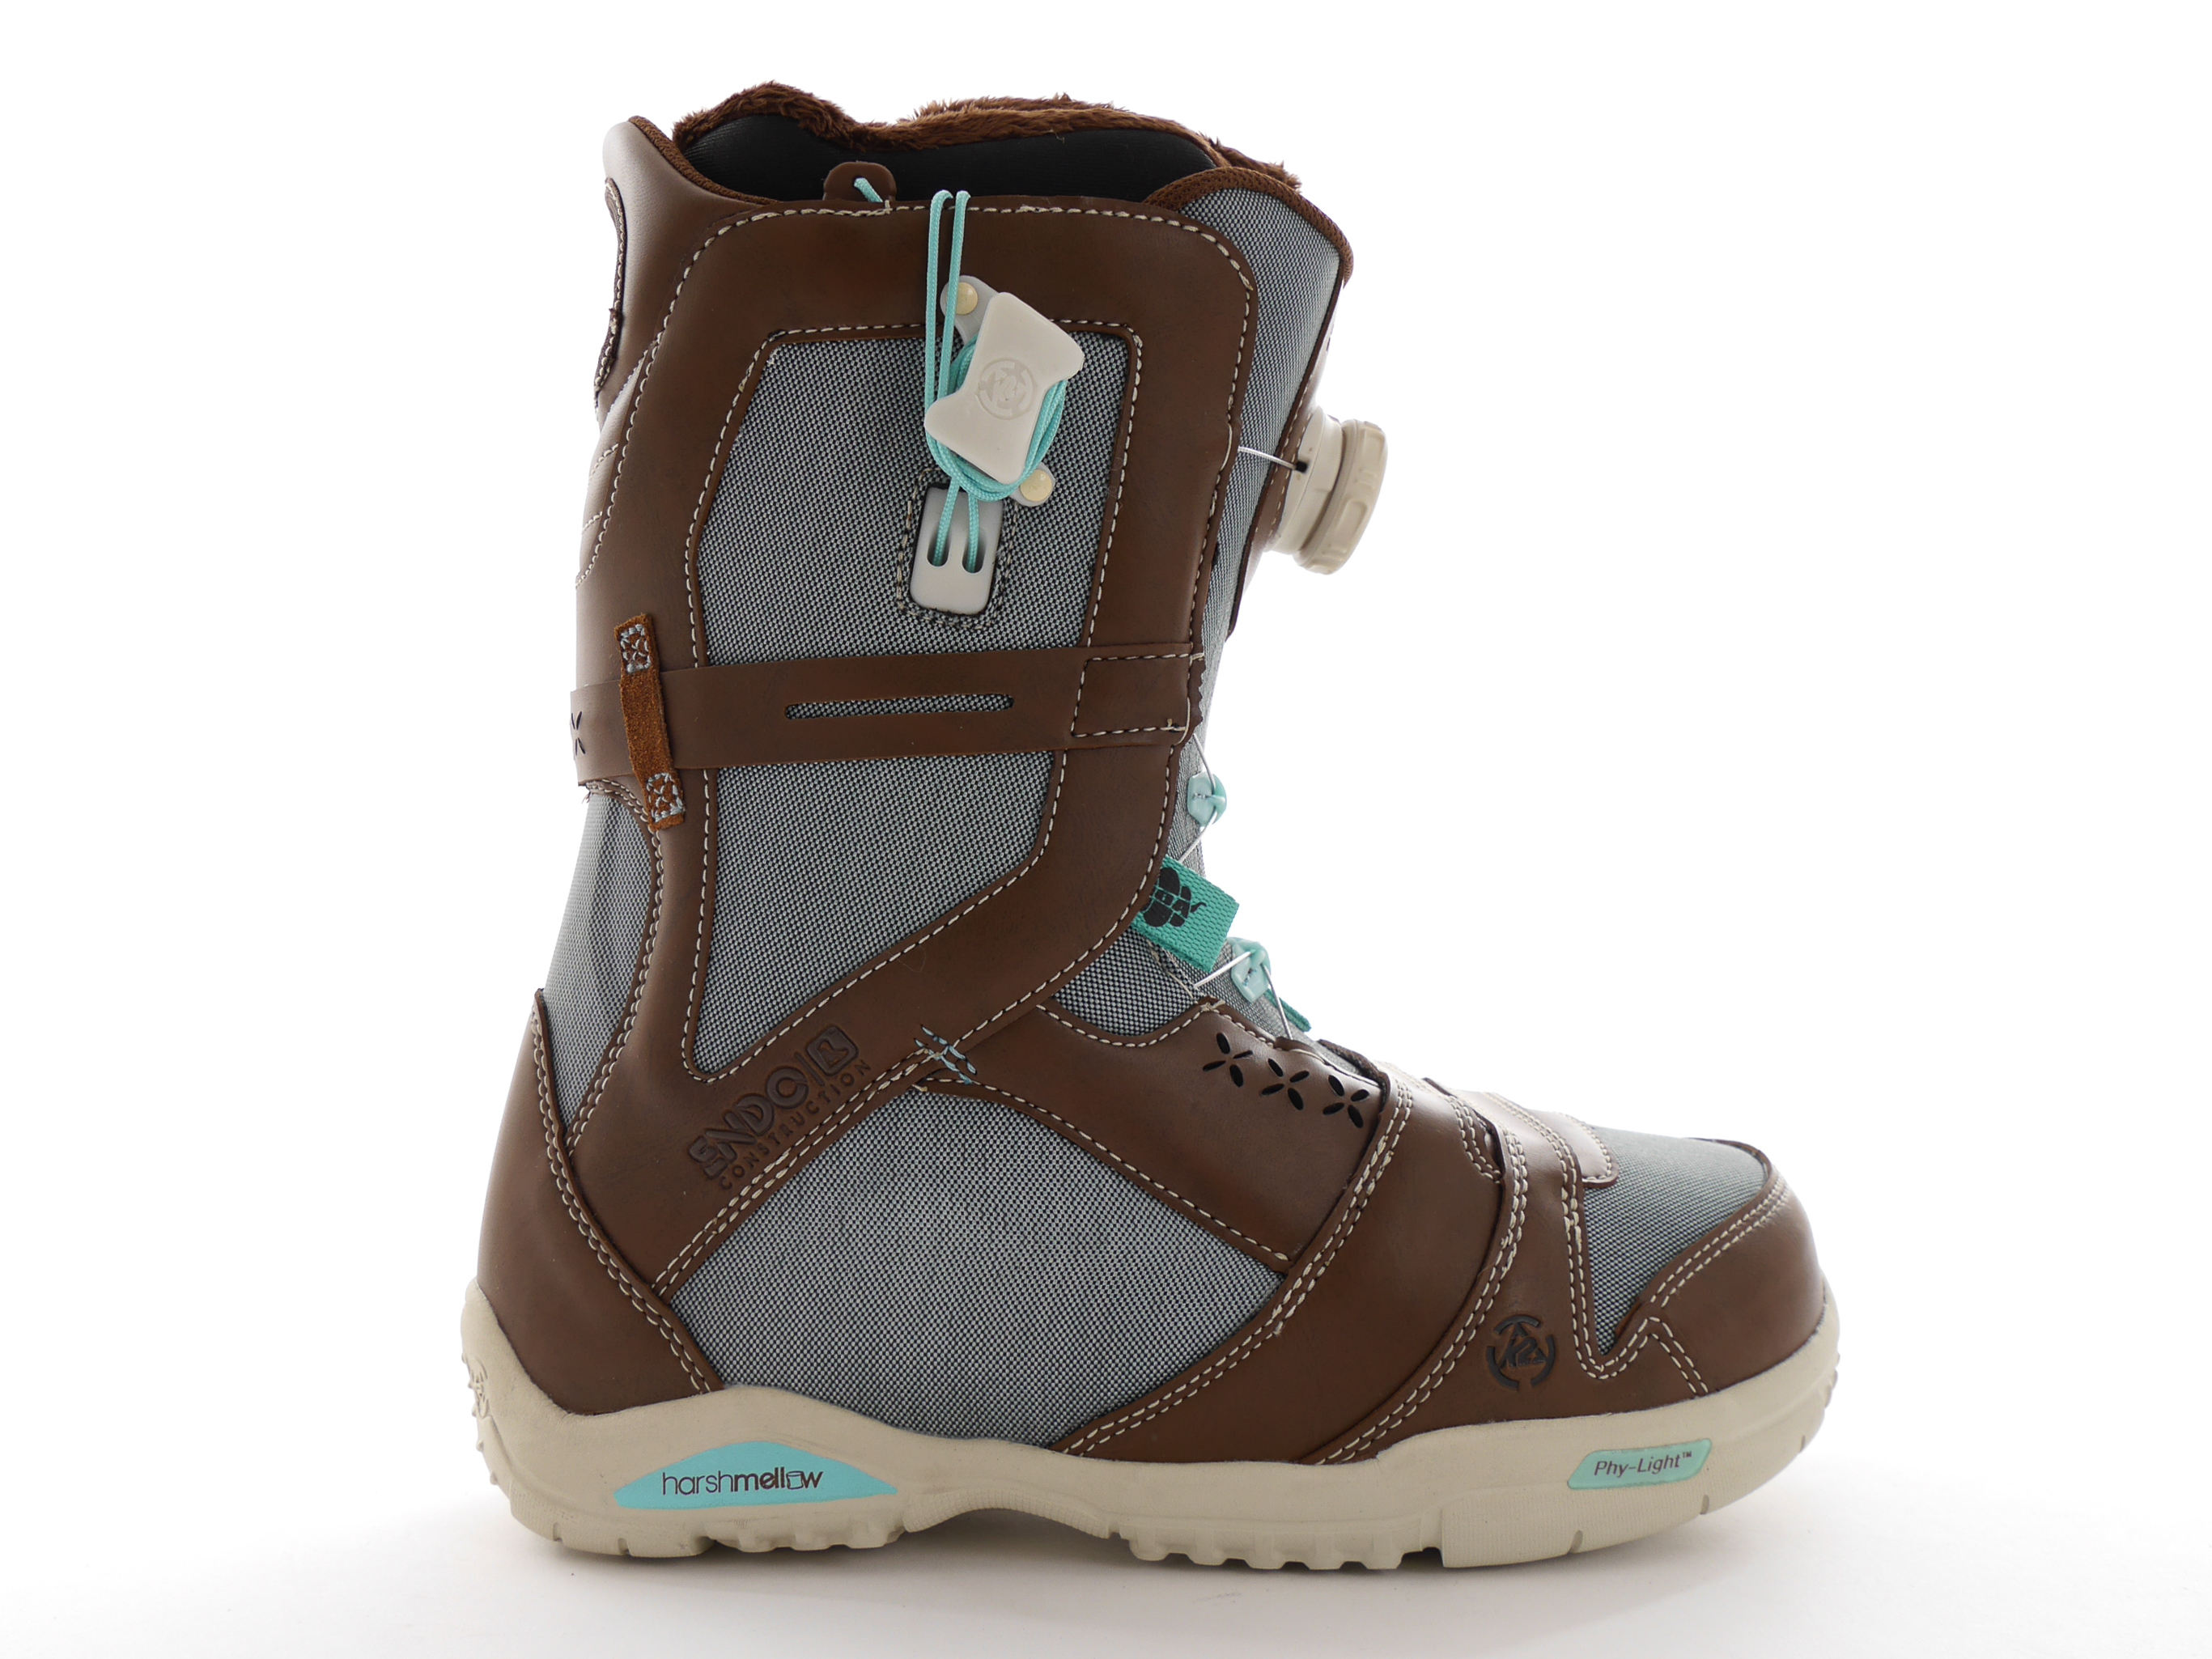 k2 snowboardboots snowboard boots passage brown conda system boa. Black Bedroom Furniture Sets. Home Design Ideas